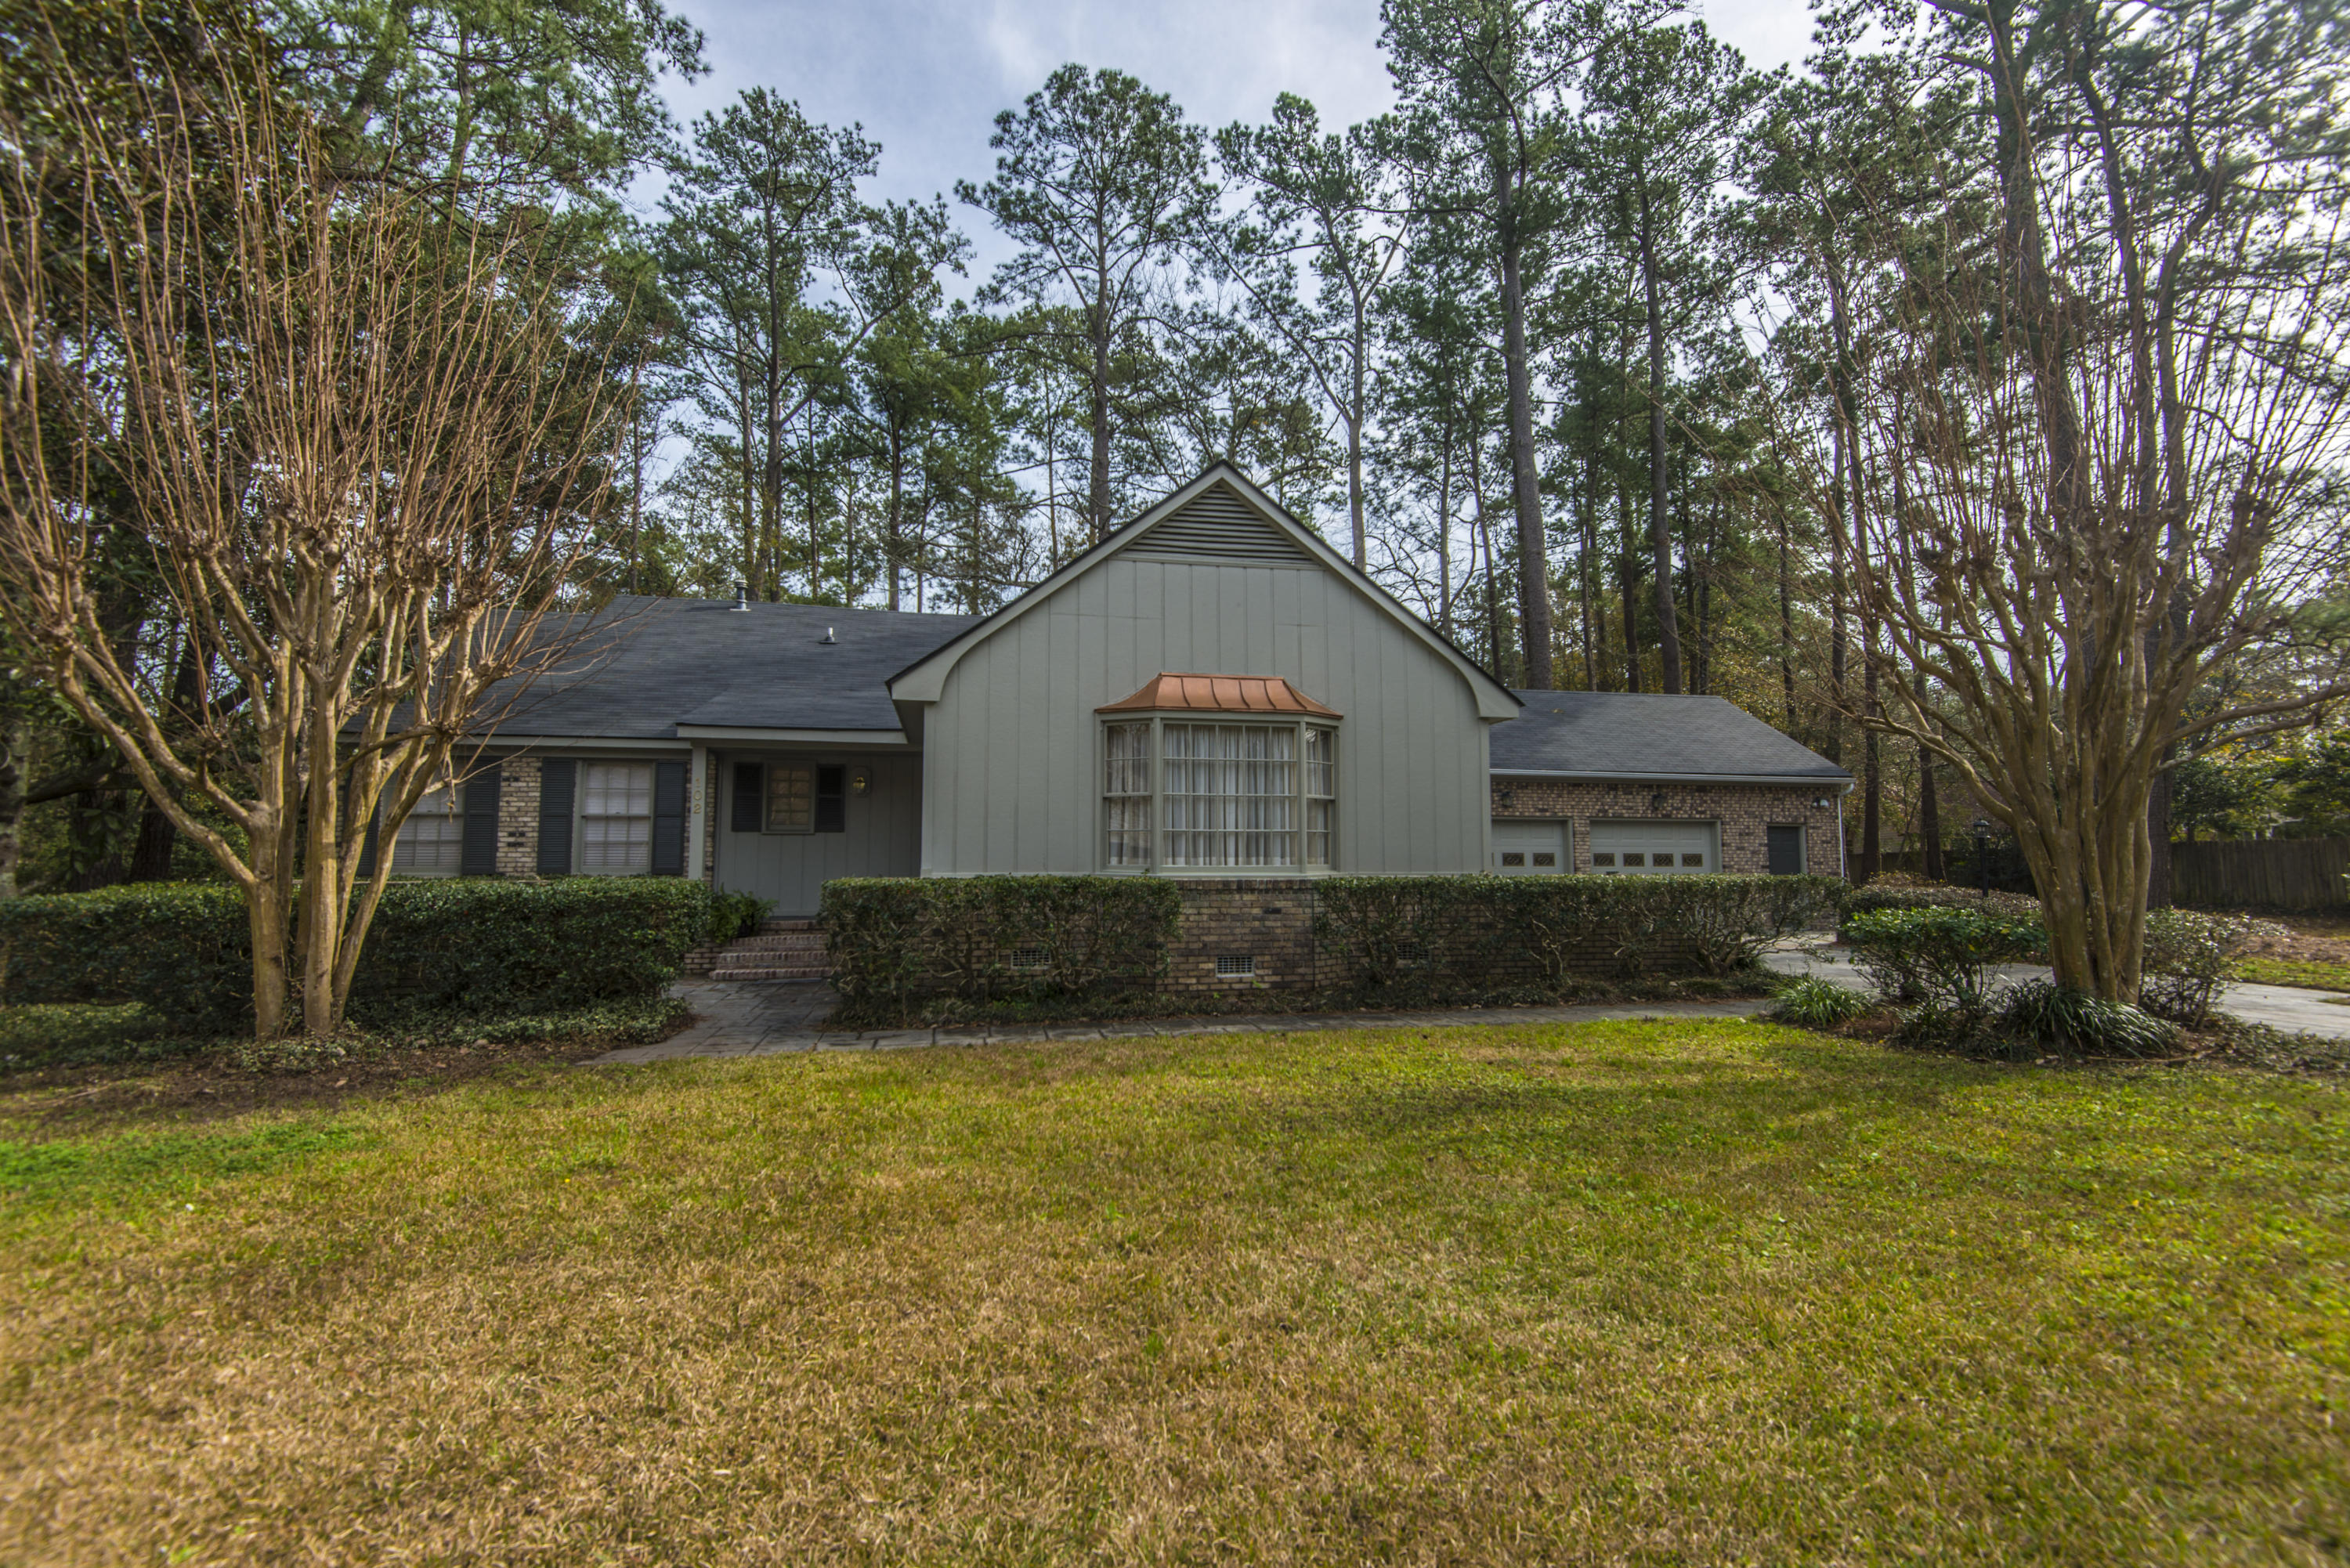 Kings Grant Homes For Sale - 102 Candlewood, Summerville, SC - 16